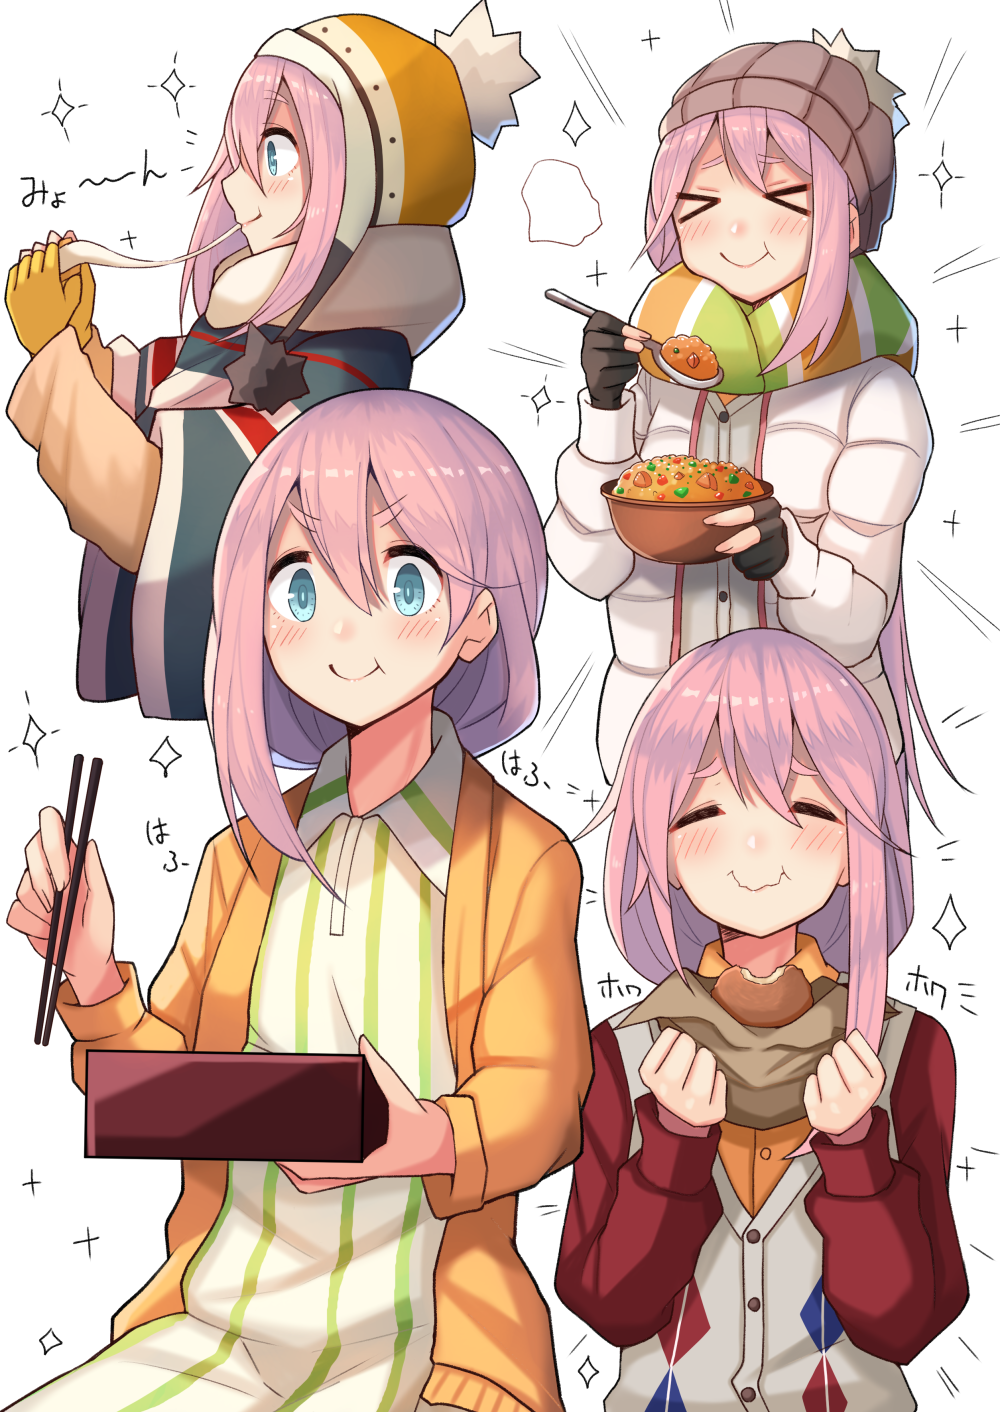 1girl bag bangs beanie blue_eyes blush buttons cardigan chopsticks closed_mouth commentary_request dress eating food gloves hair_between_eyes hat highres holding holding_chopsticks holding_food holding_spoon kagamihara_nadeshiko long_hair long_sleeves low_tied_hair multiple_views obentou open_cardigan open_clothes partly_fingerless_gloves pink_hair plan_(planhaplalan) scarf simple_background smile spoon striped striped_dress striped_legwear sweater_vest toast upper_body vertical-striped_legwear vertical_stripes white_background white_coat yellow_cardigan yellow_gloves yurucamp